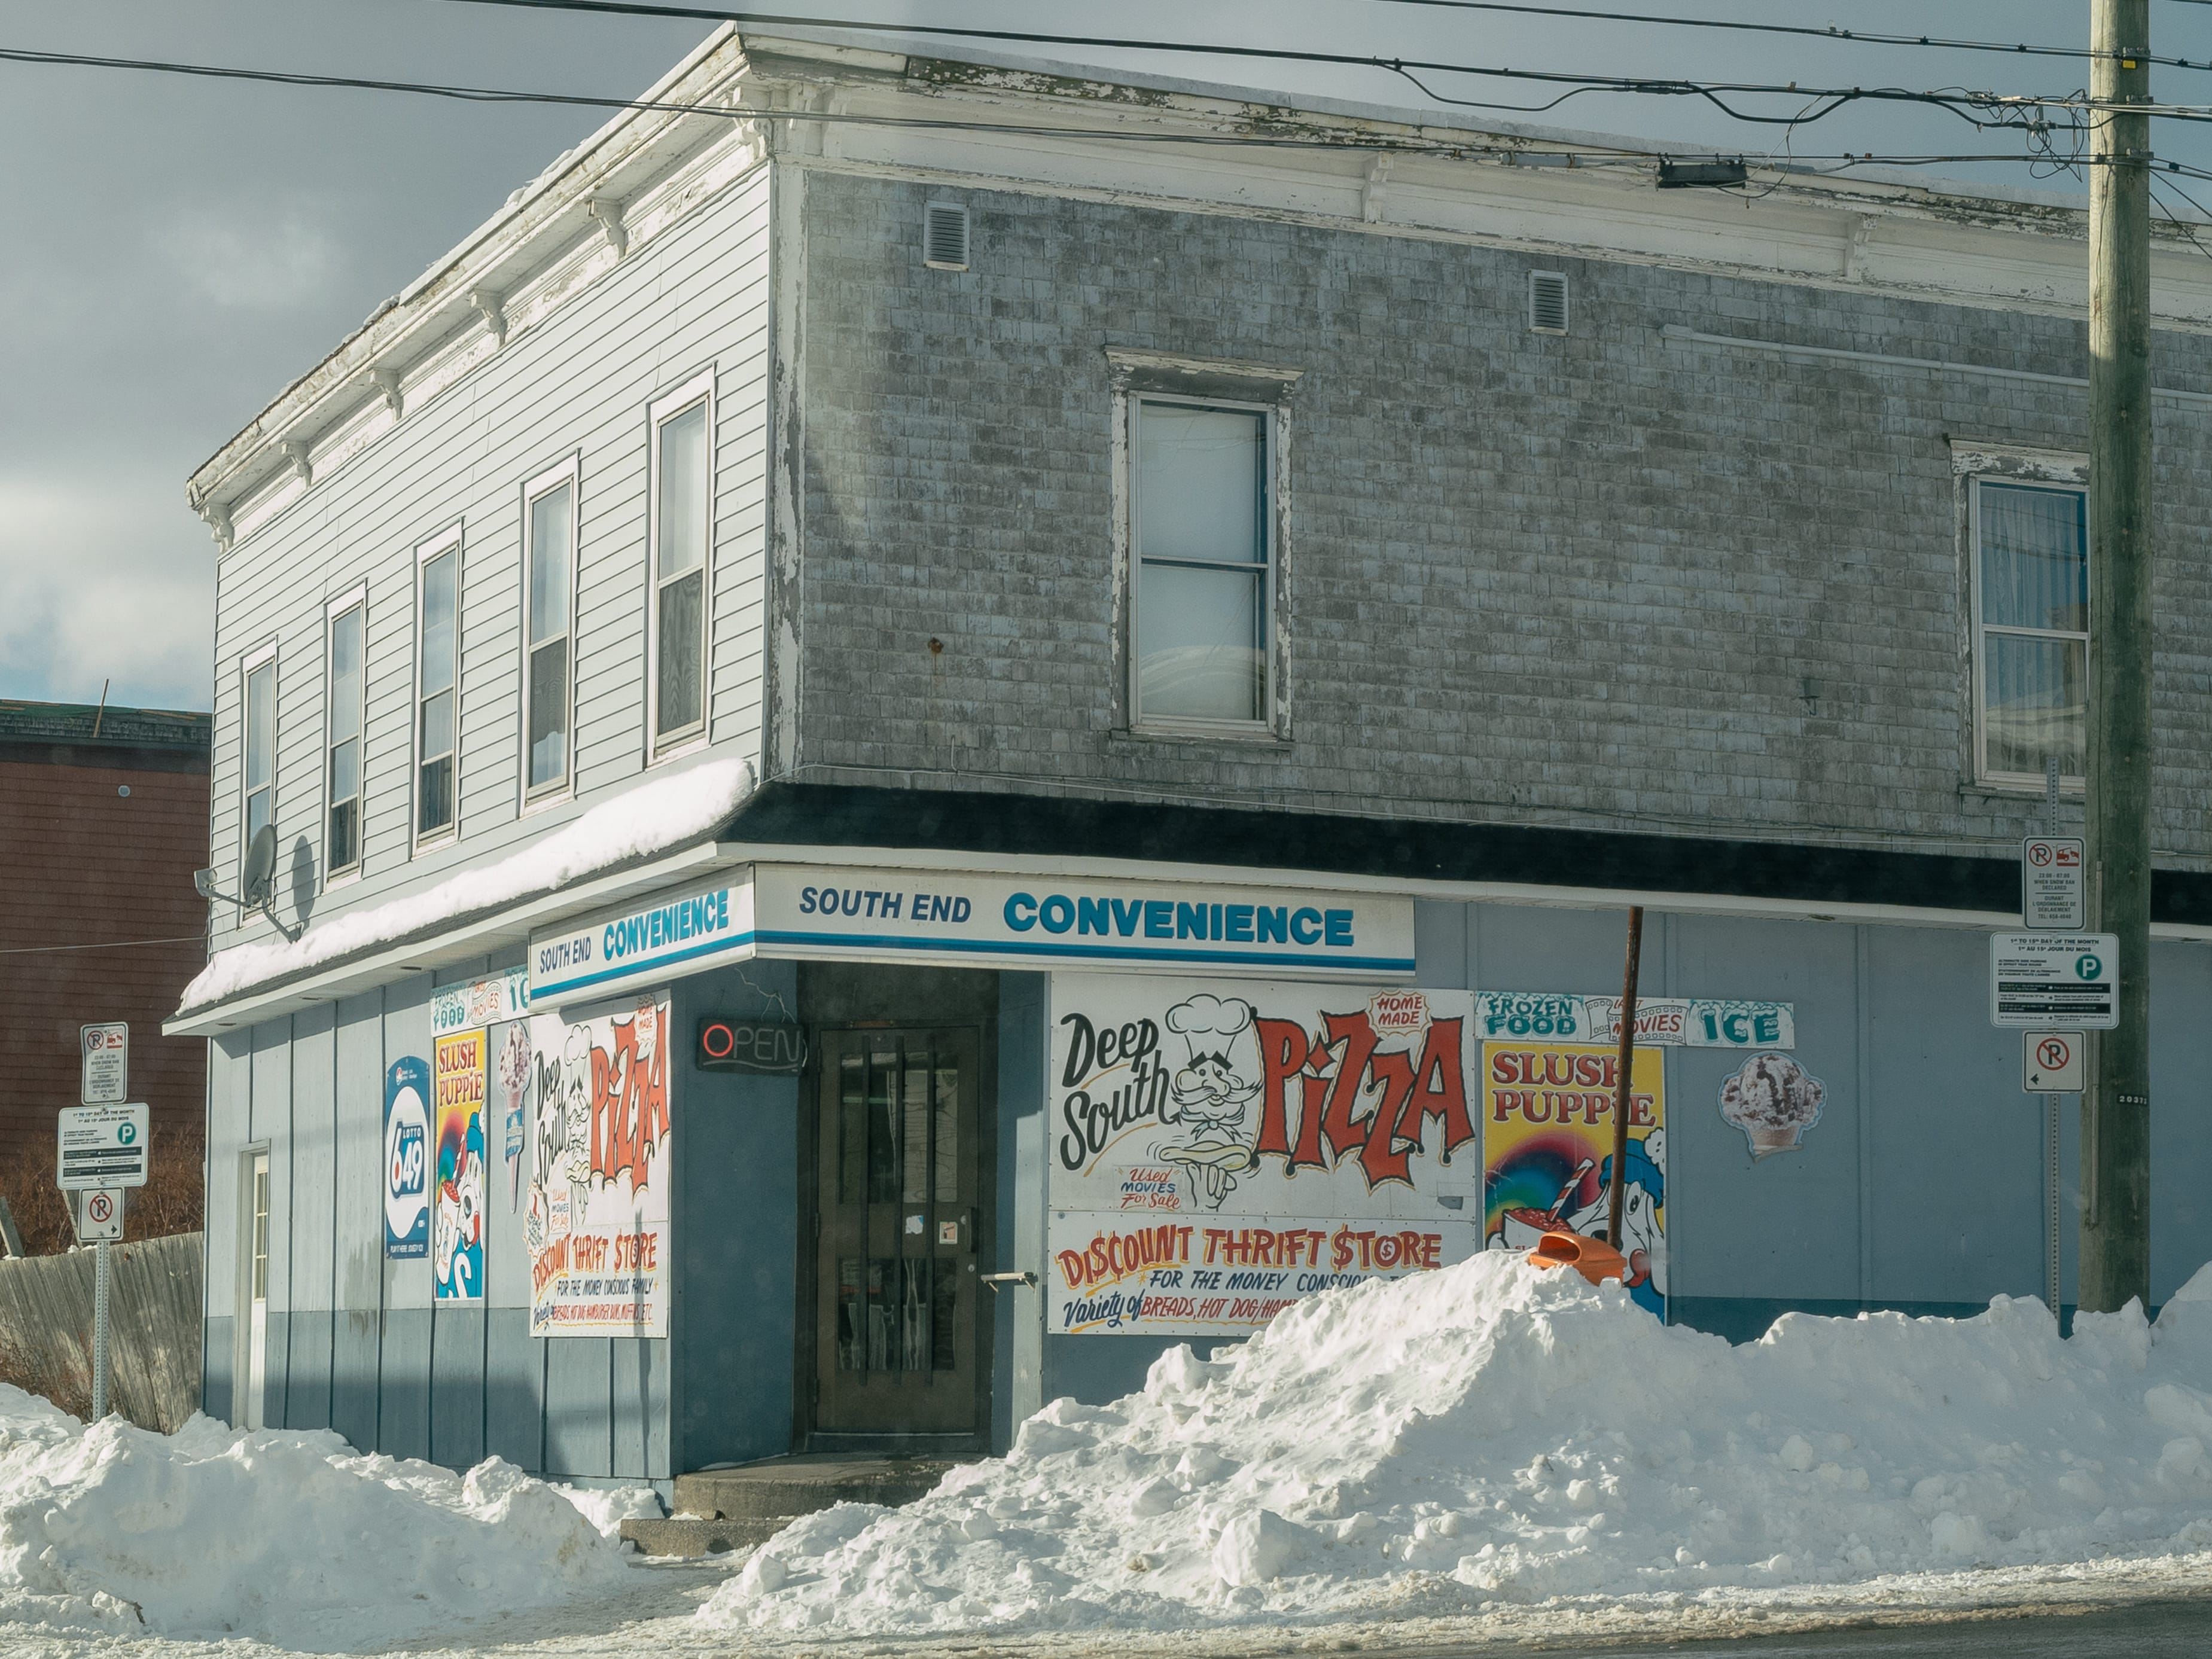 A photograph depicting South End Convenience in Winter Saint John